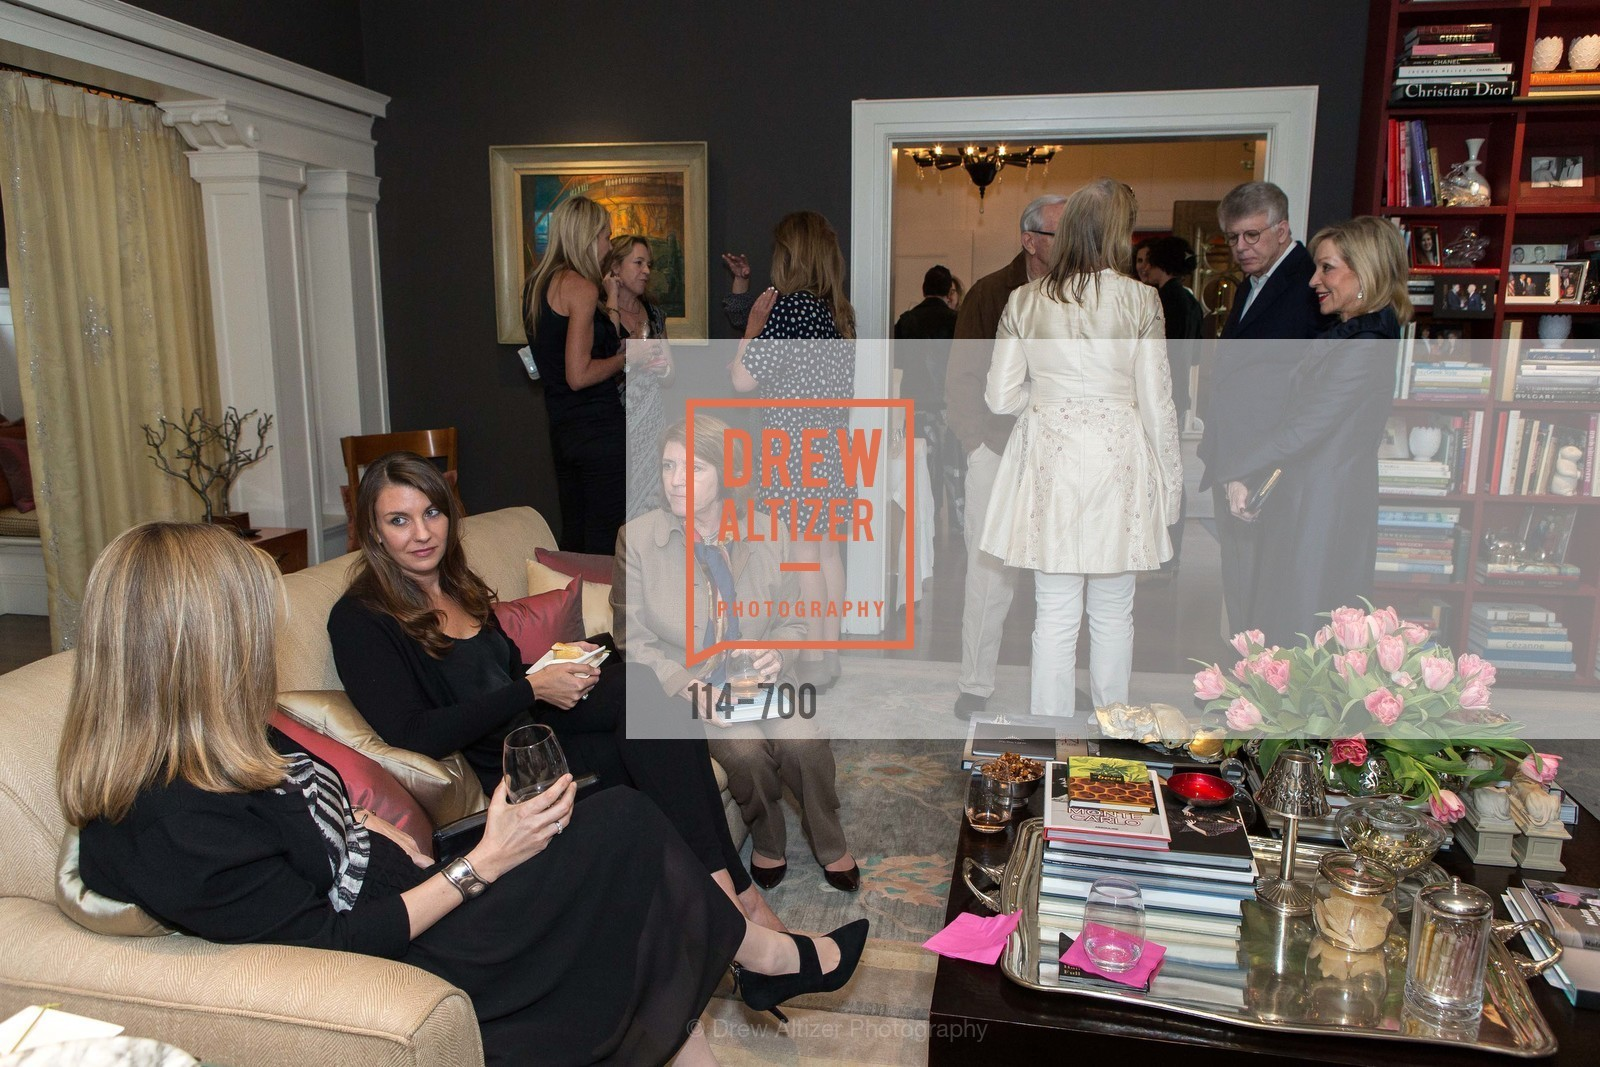 Atmosphere, SUKEY FORBES' Book Signing, US, May 7th, 2015,Drew Altizer, Drew Altizer Photography, full-service agency, private events, San Francisco photographer, photographer california